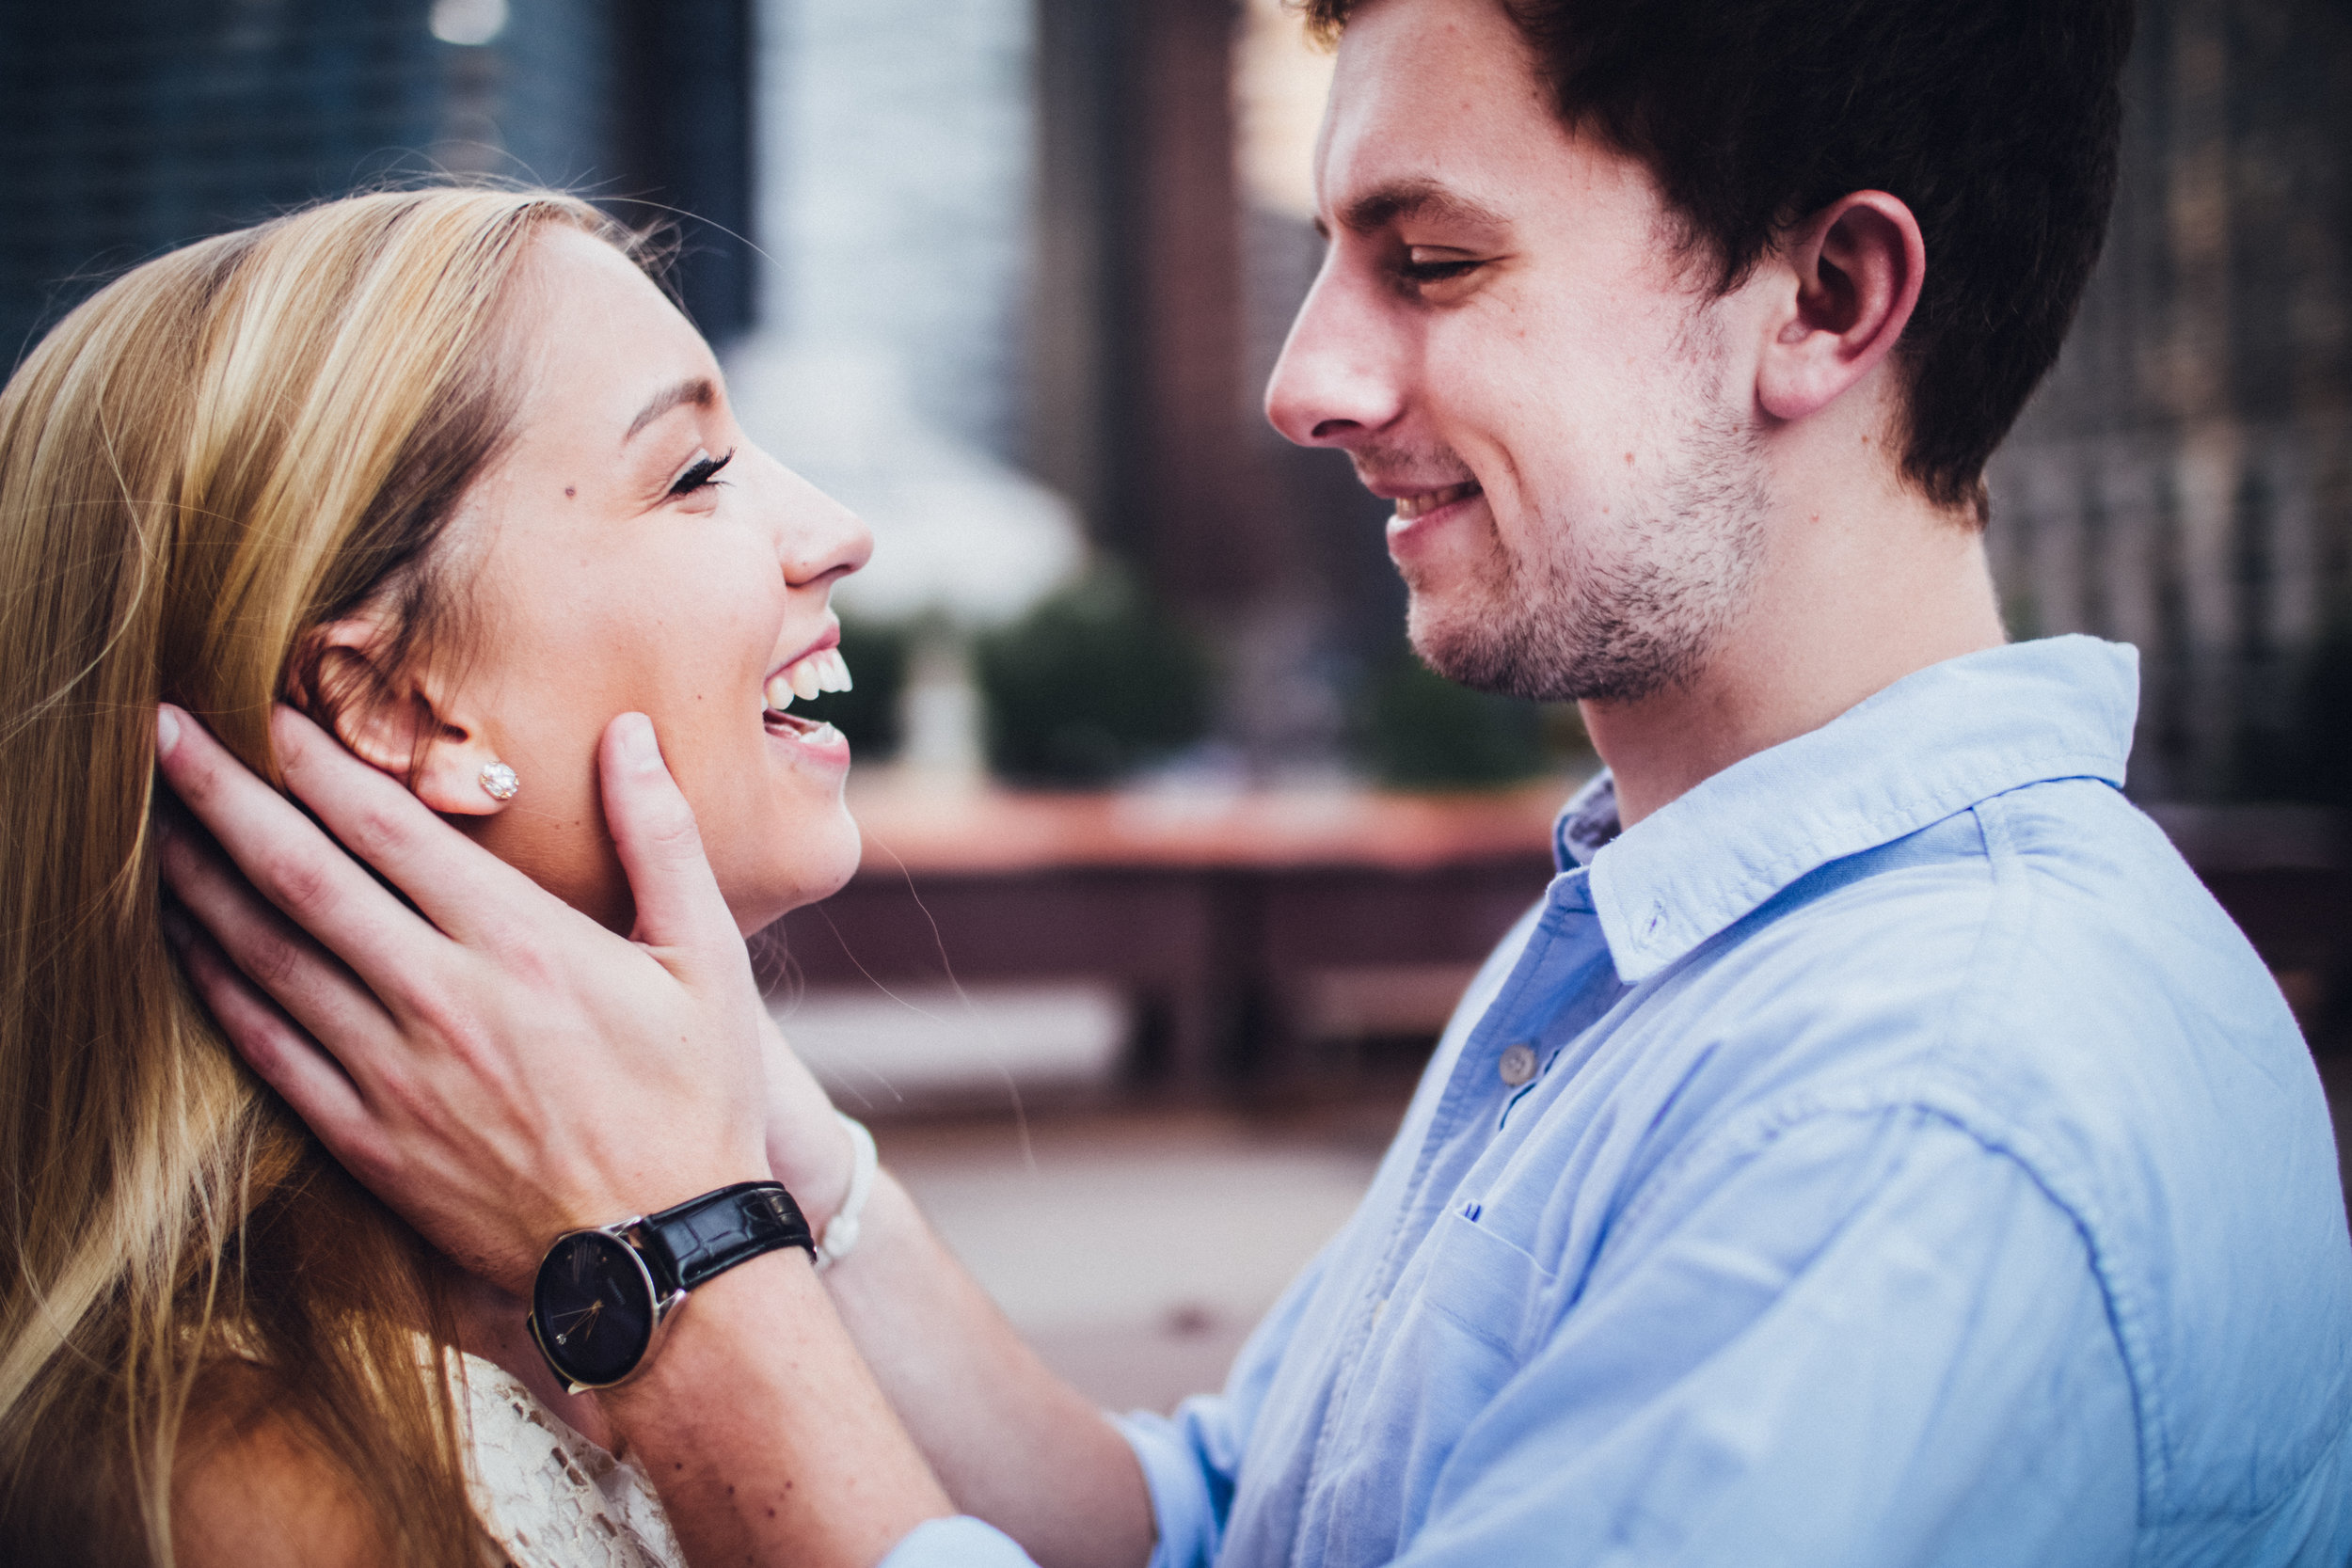 photographer-photographers-photography-wedding-engagement-bryce-anna-shadow-shine-pictures-chicago